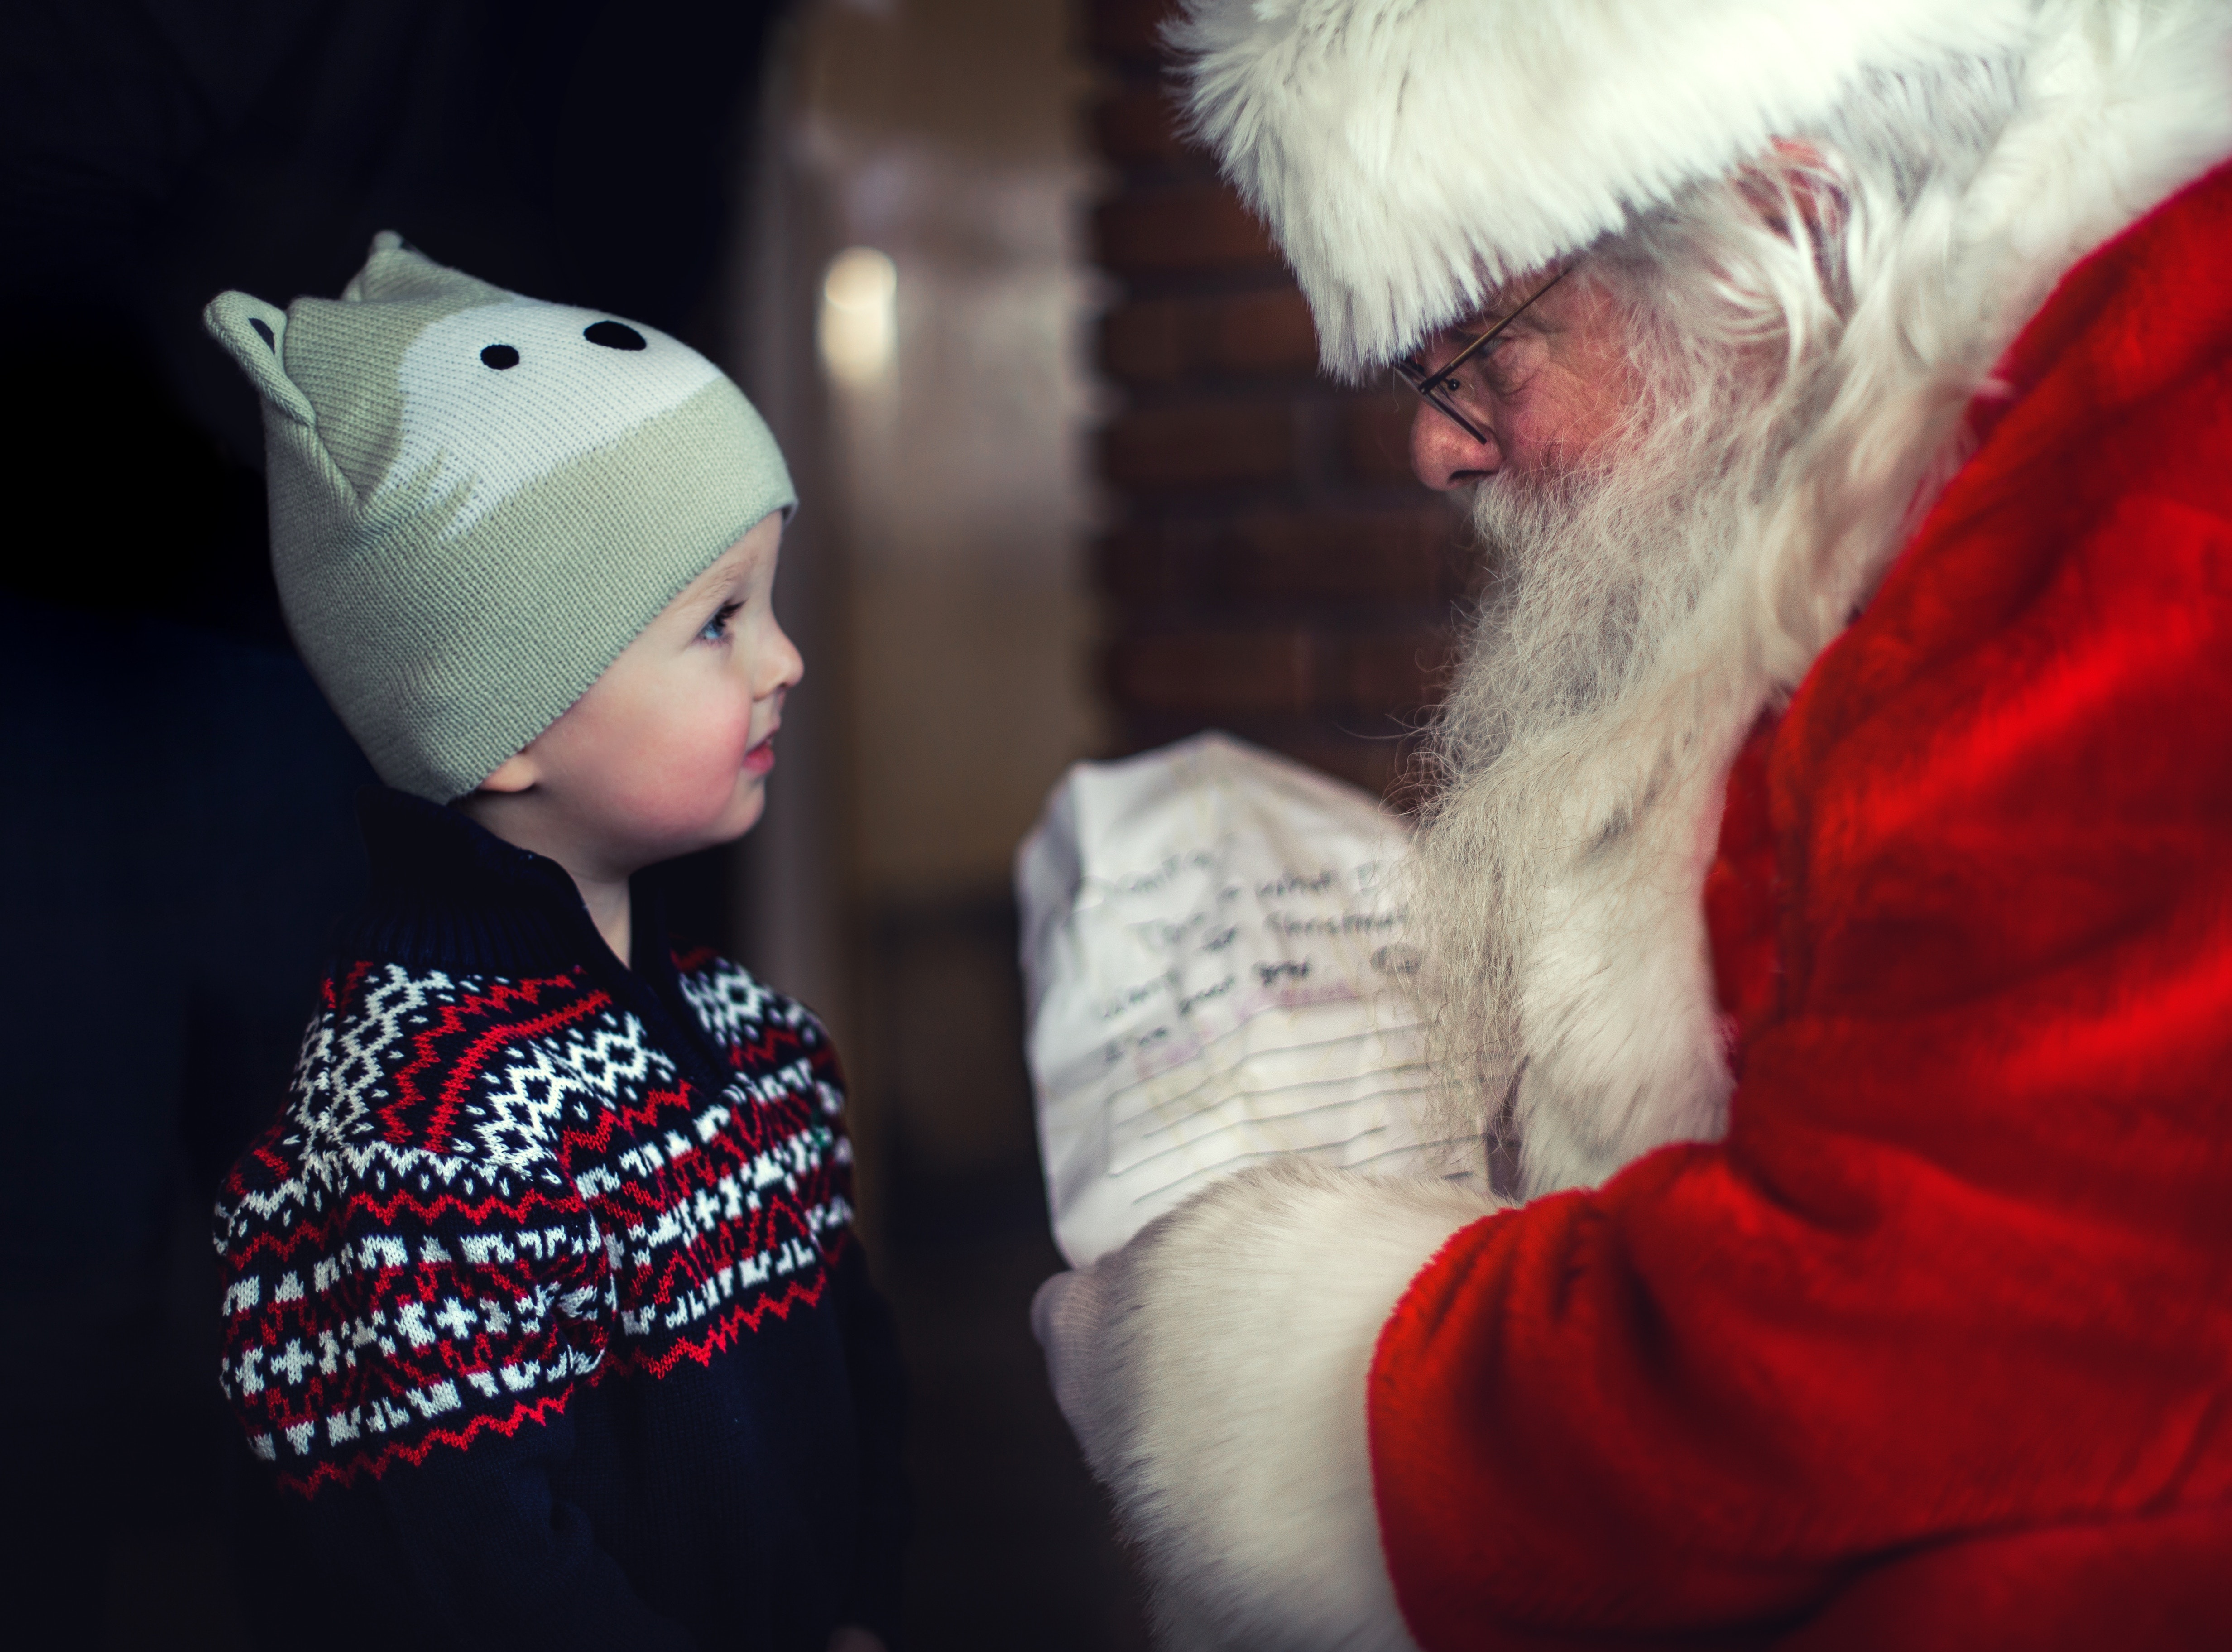 30% of children received trust issues from  Santa